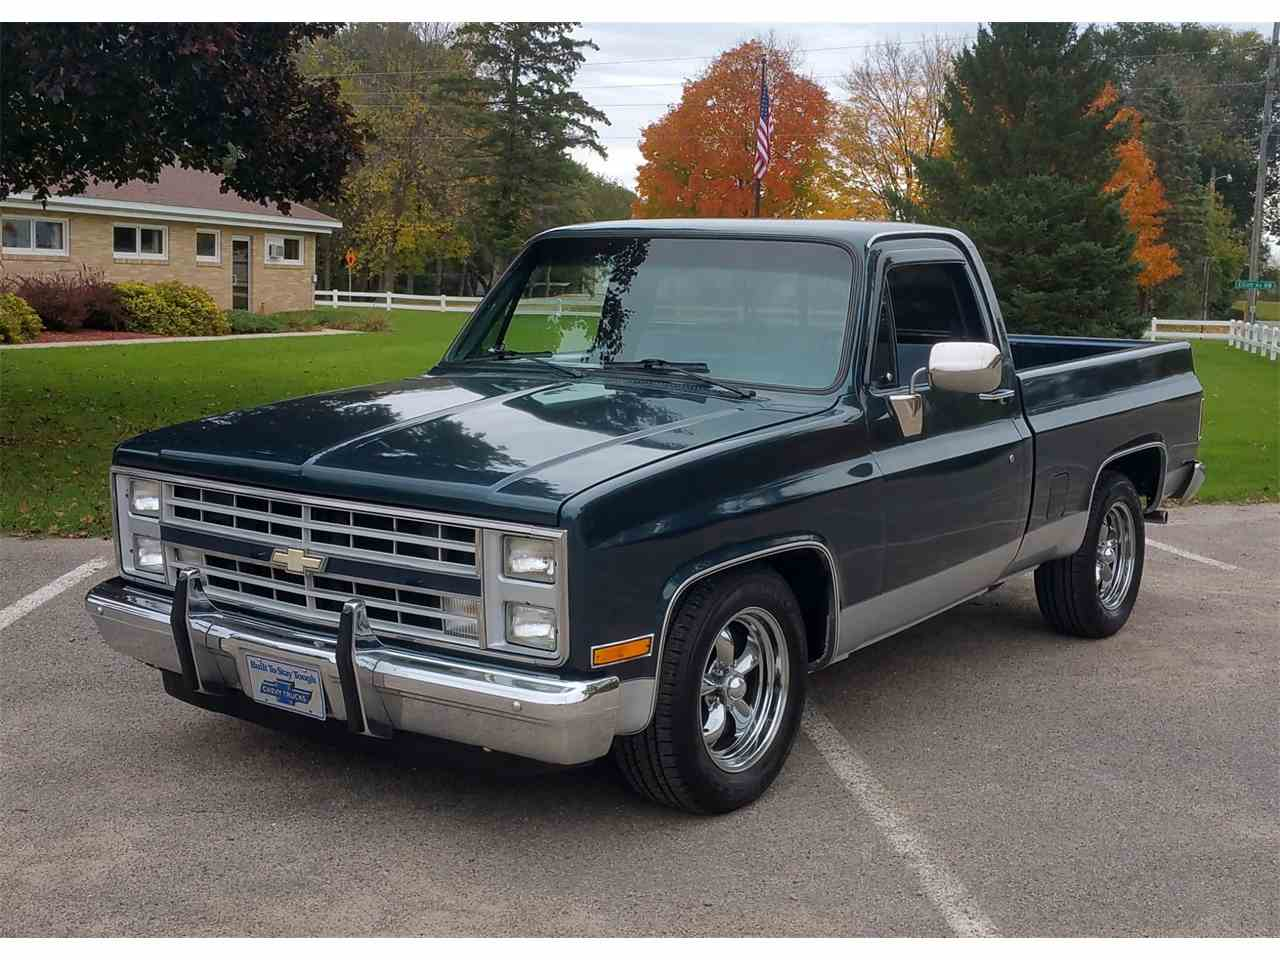 All Chevy chevy 1986 c10 : All Chevy » 1986 C10 Chevy - Old Chevy Photos Collection, All ...